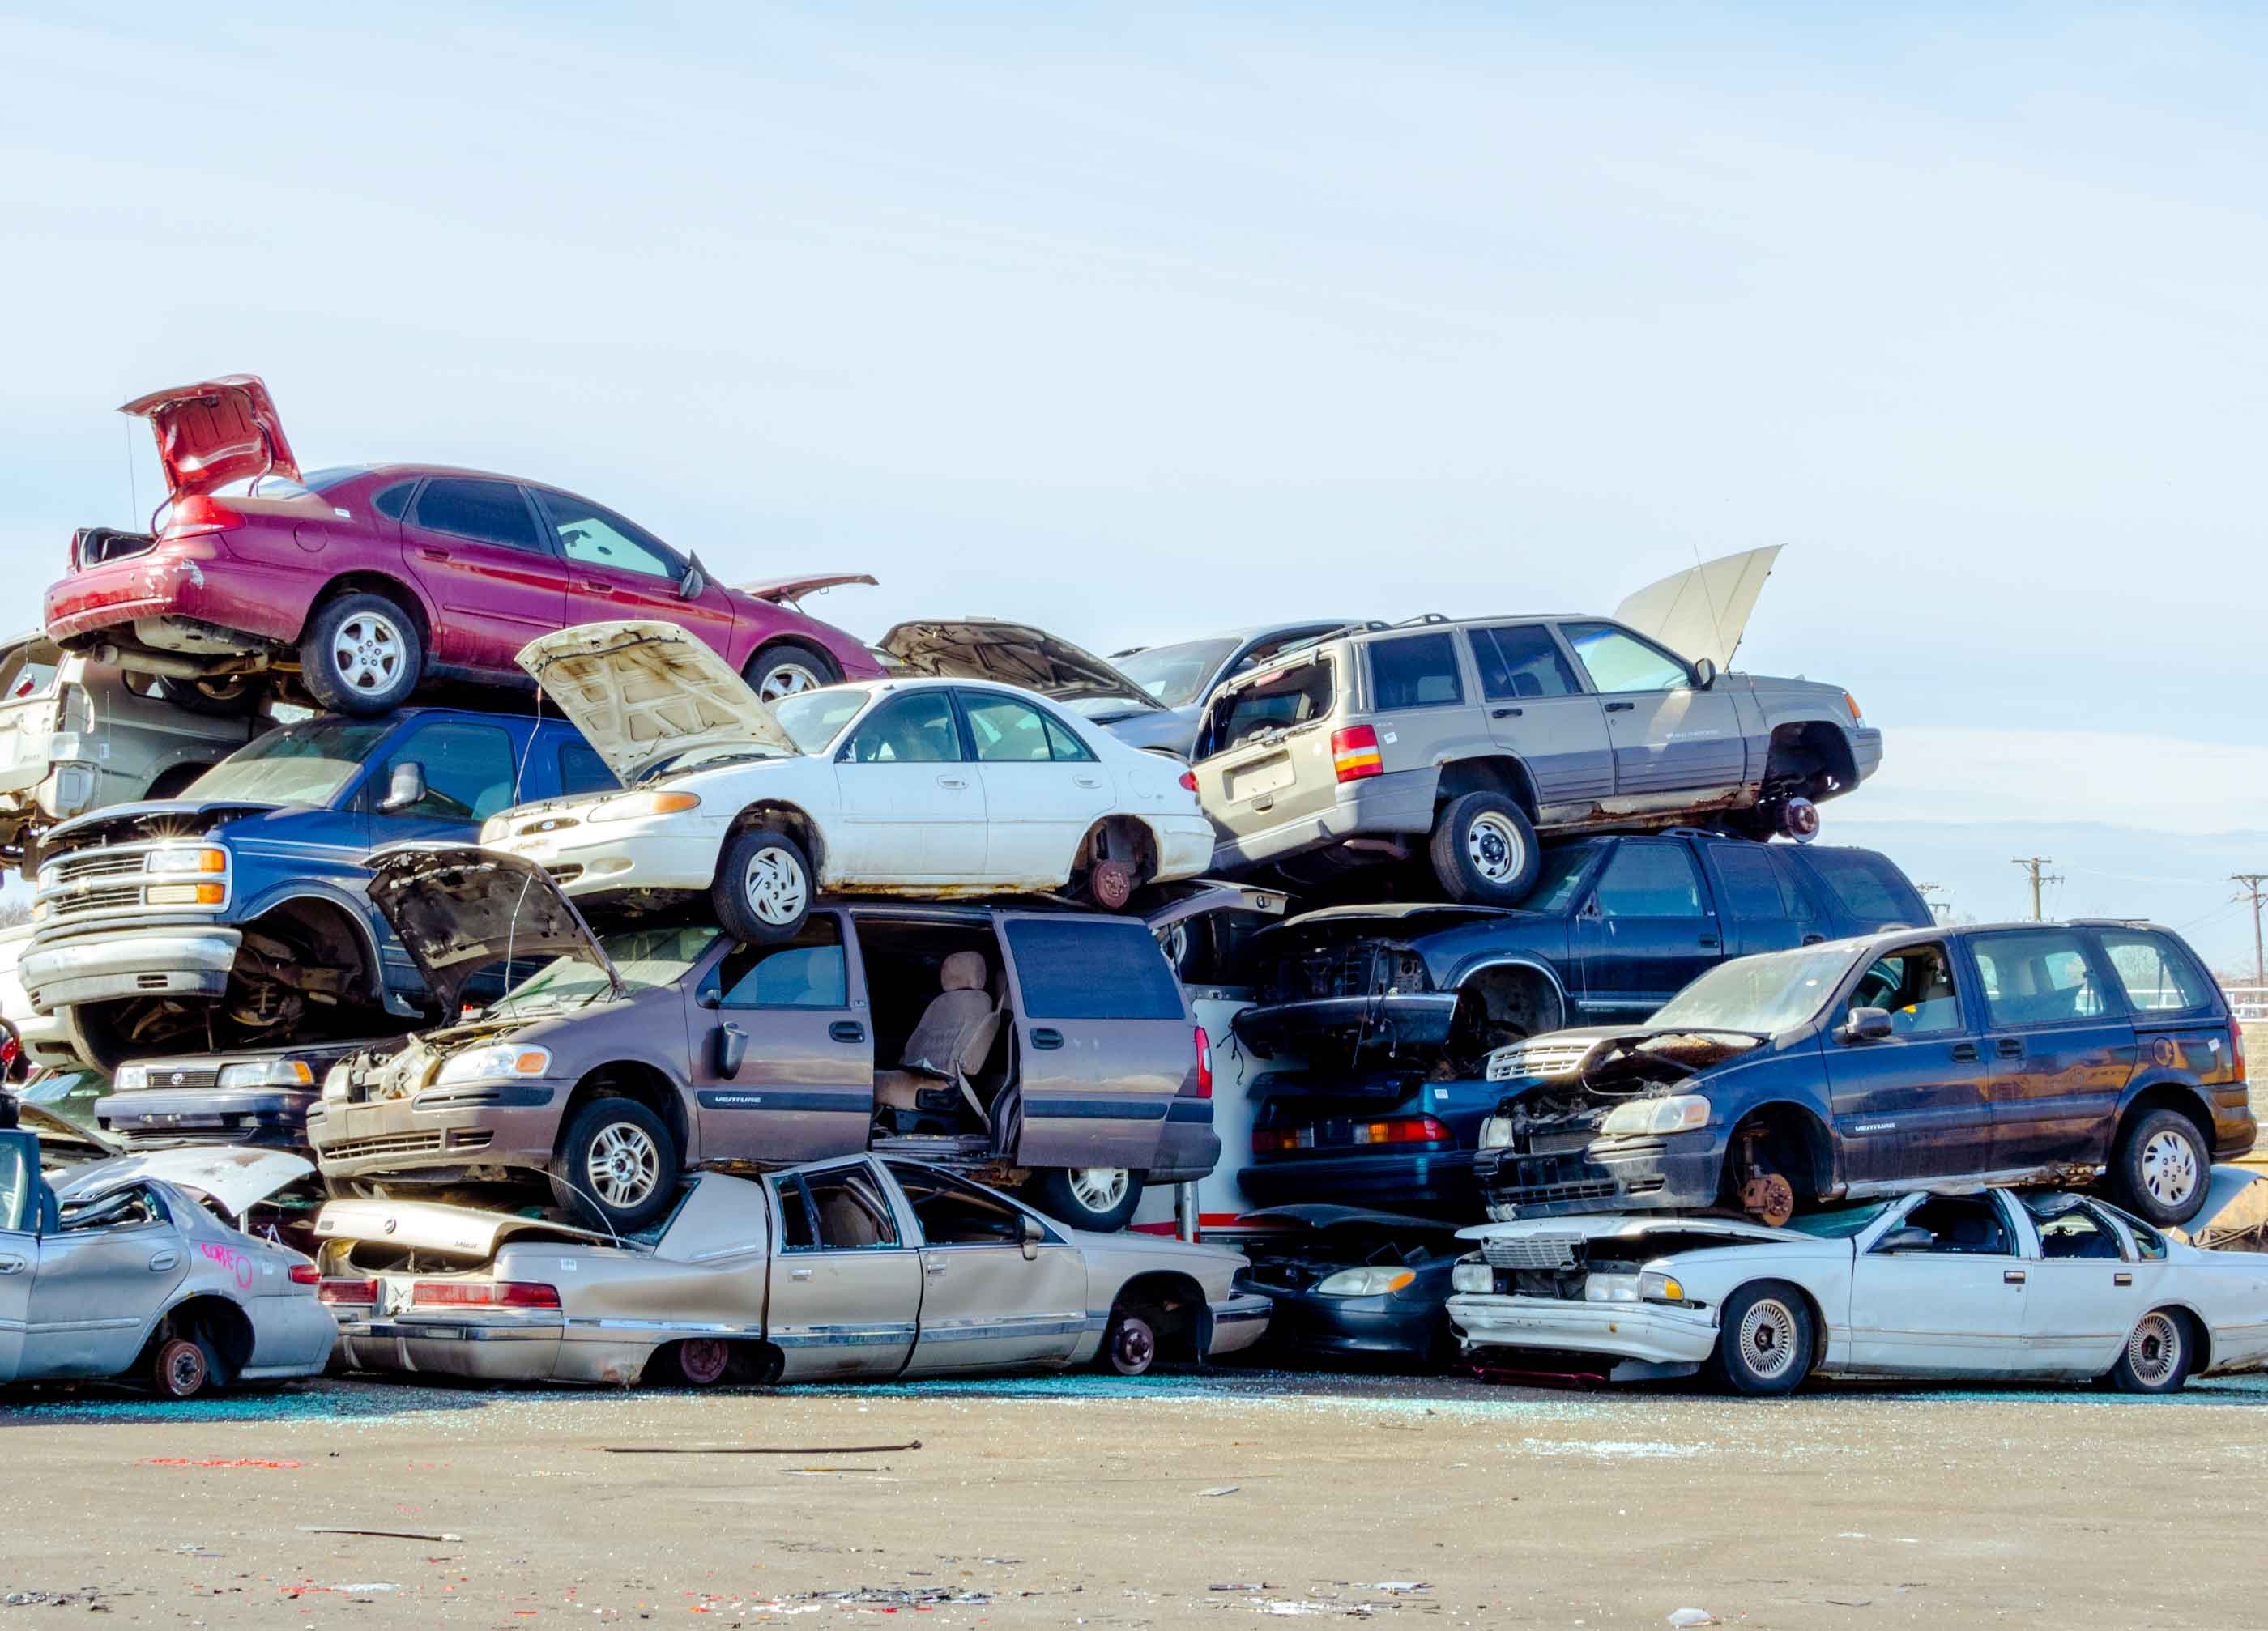 Car for Sale Qld Lovely Car Wreckers Brisbane · Wreck Vehicles Bought for Cash Brisbane